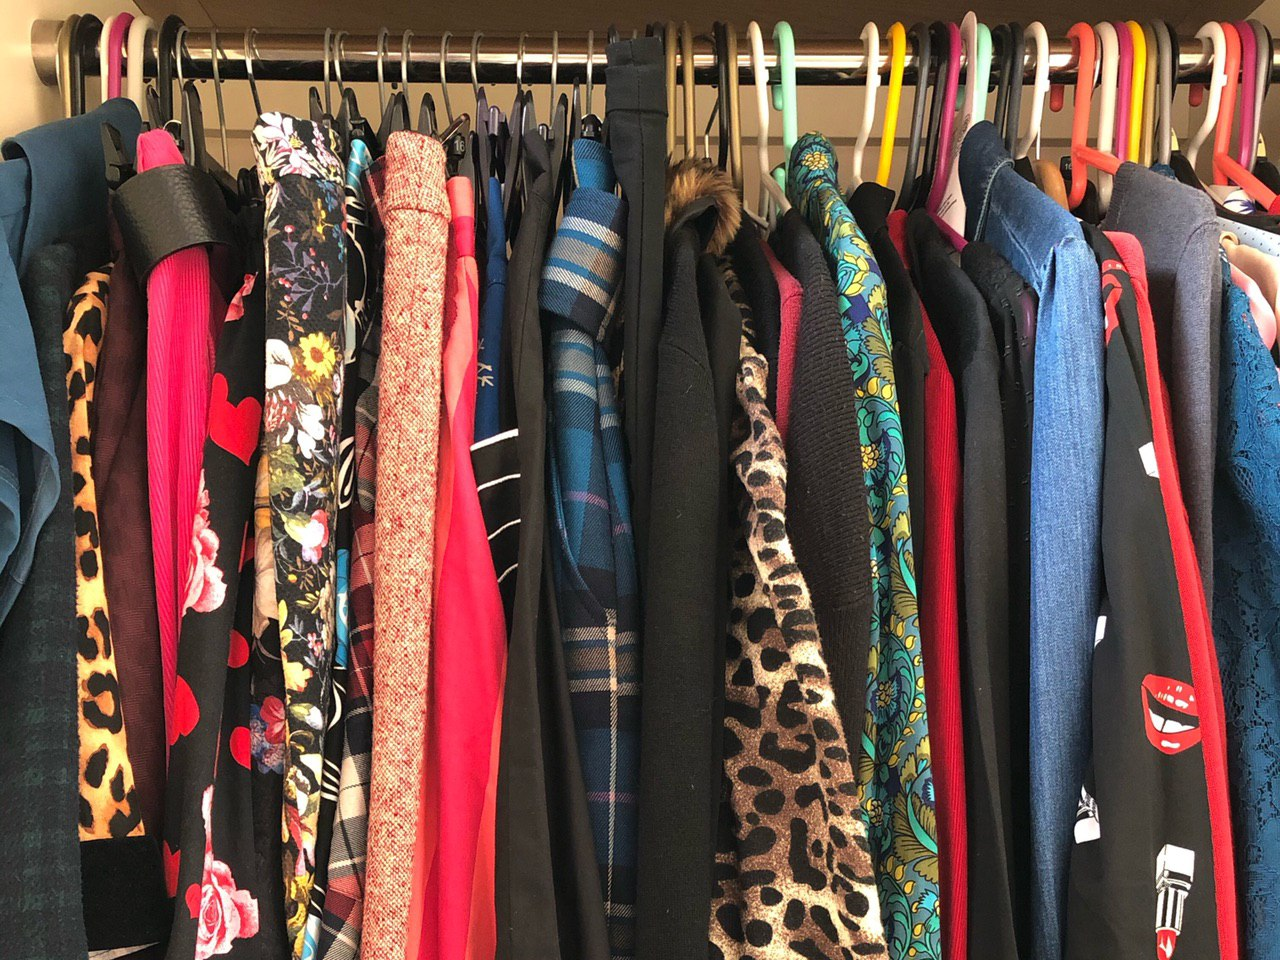 Lori's wardrobe, April 2020